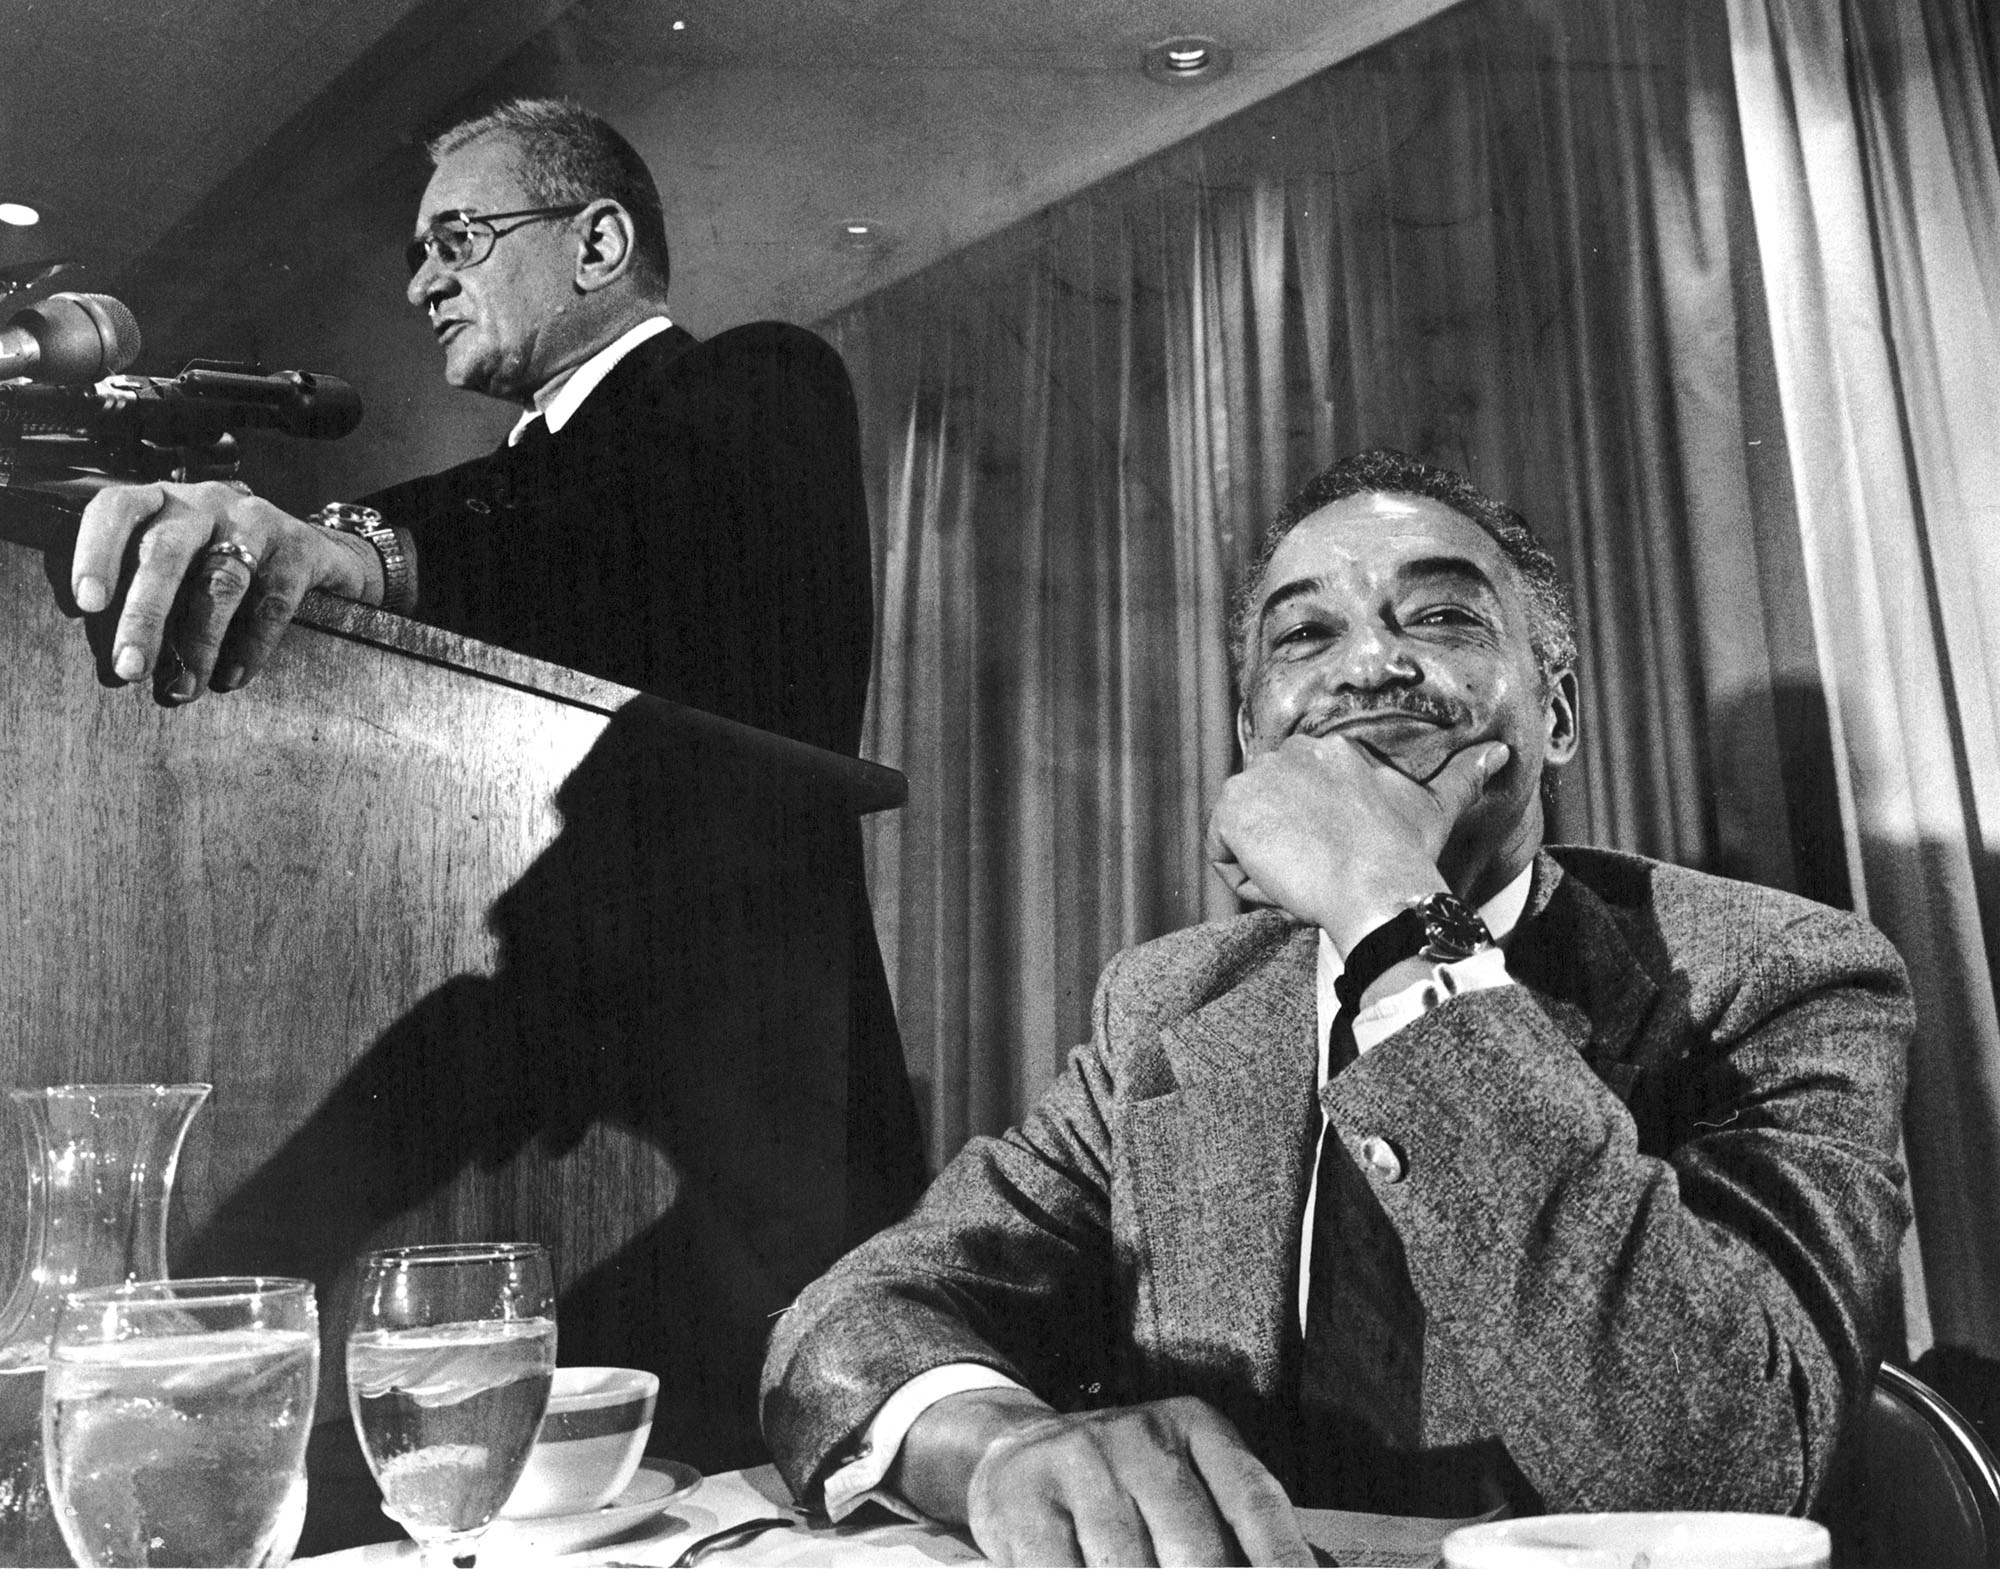 Mayoral candidate John Nichols speaks while Coleman Young, his opponent, waits his turn at the Detroit Economic Club luncheon in October 1973.  Courtesy of the Detroit Free Press .